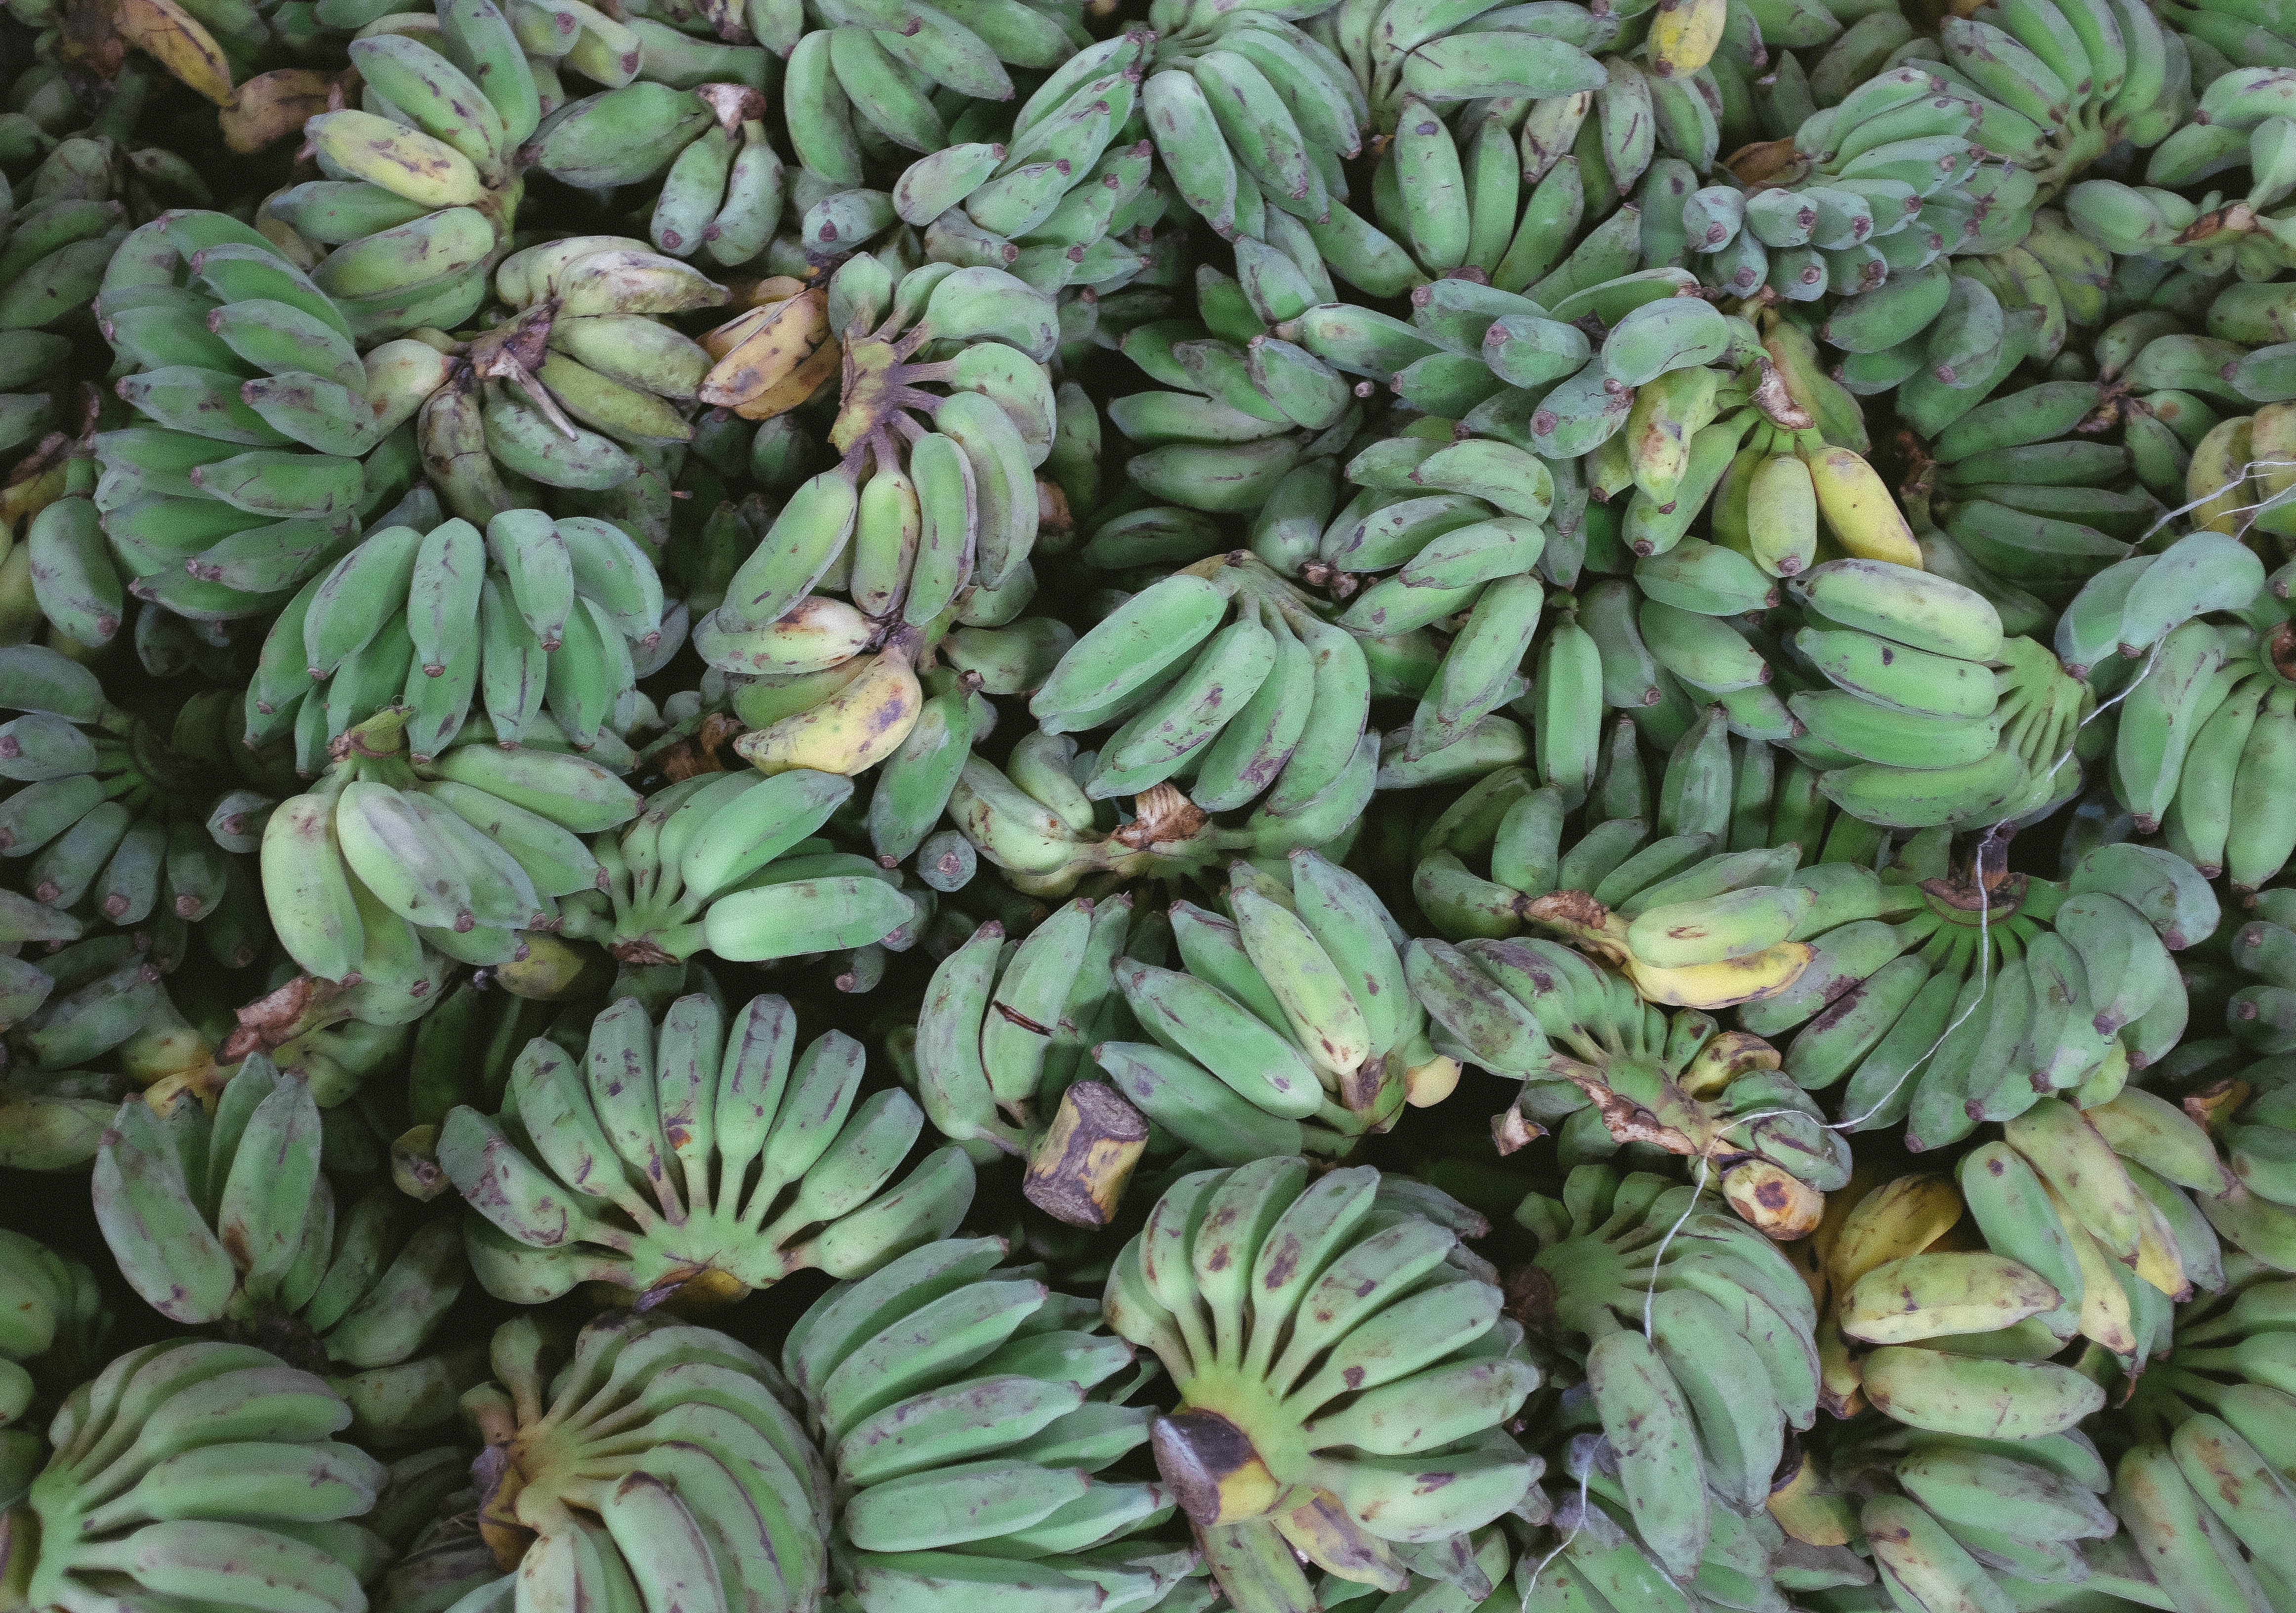 Bunches of unripe green bananas for sale